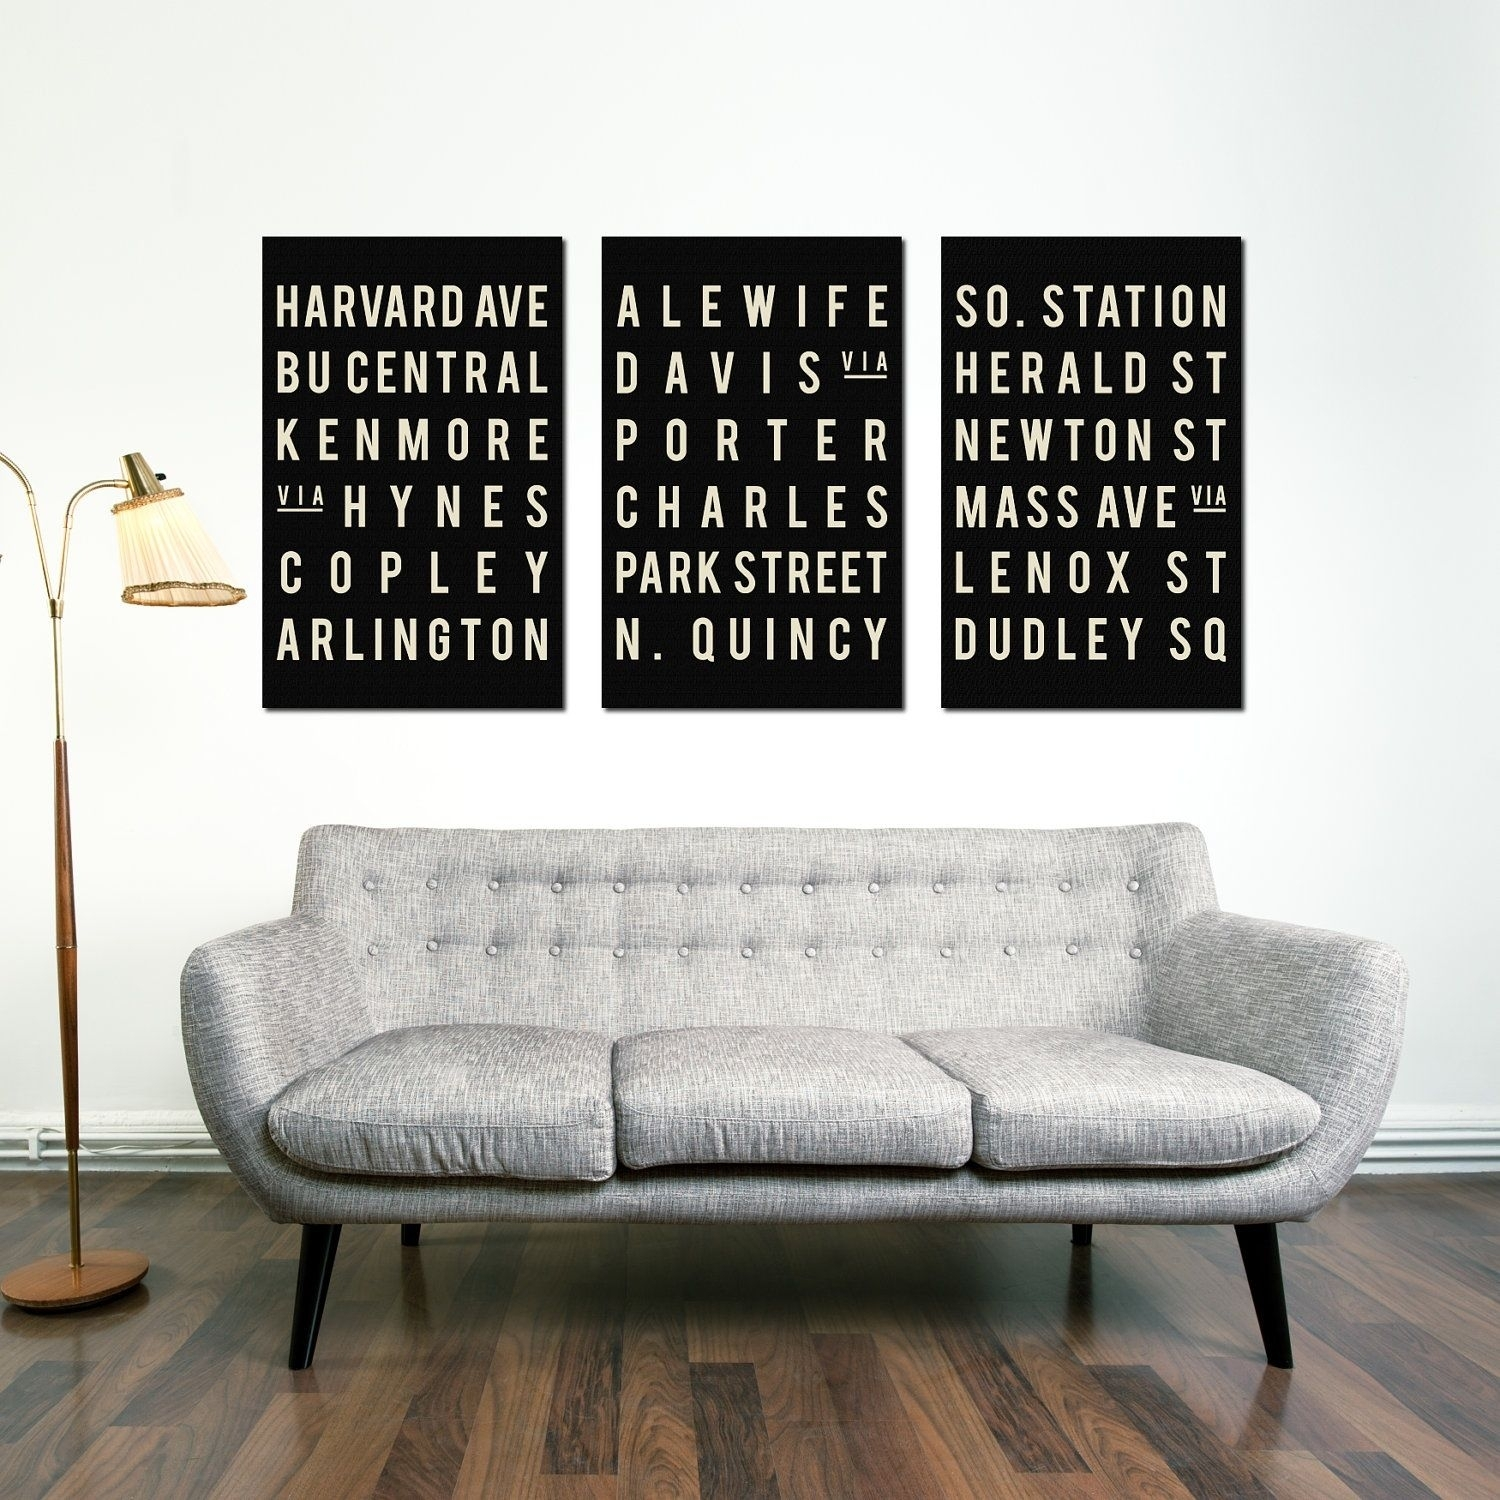 Mid Century Sofa And Boston Wall Art | Boston Favorites | Pinterest With Regard To Latest Boston Wall Art (Gallery 16 of 20)